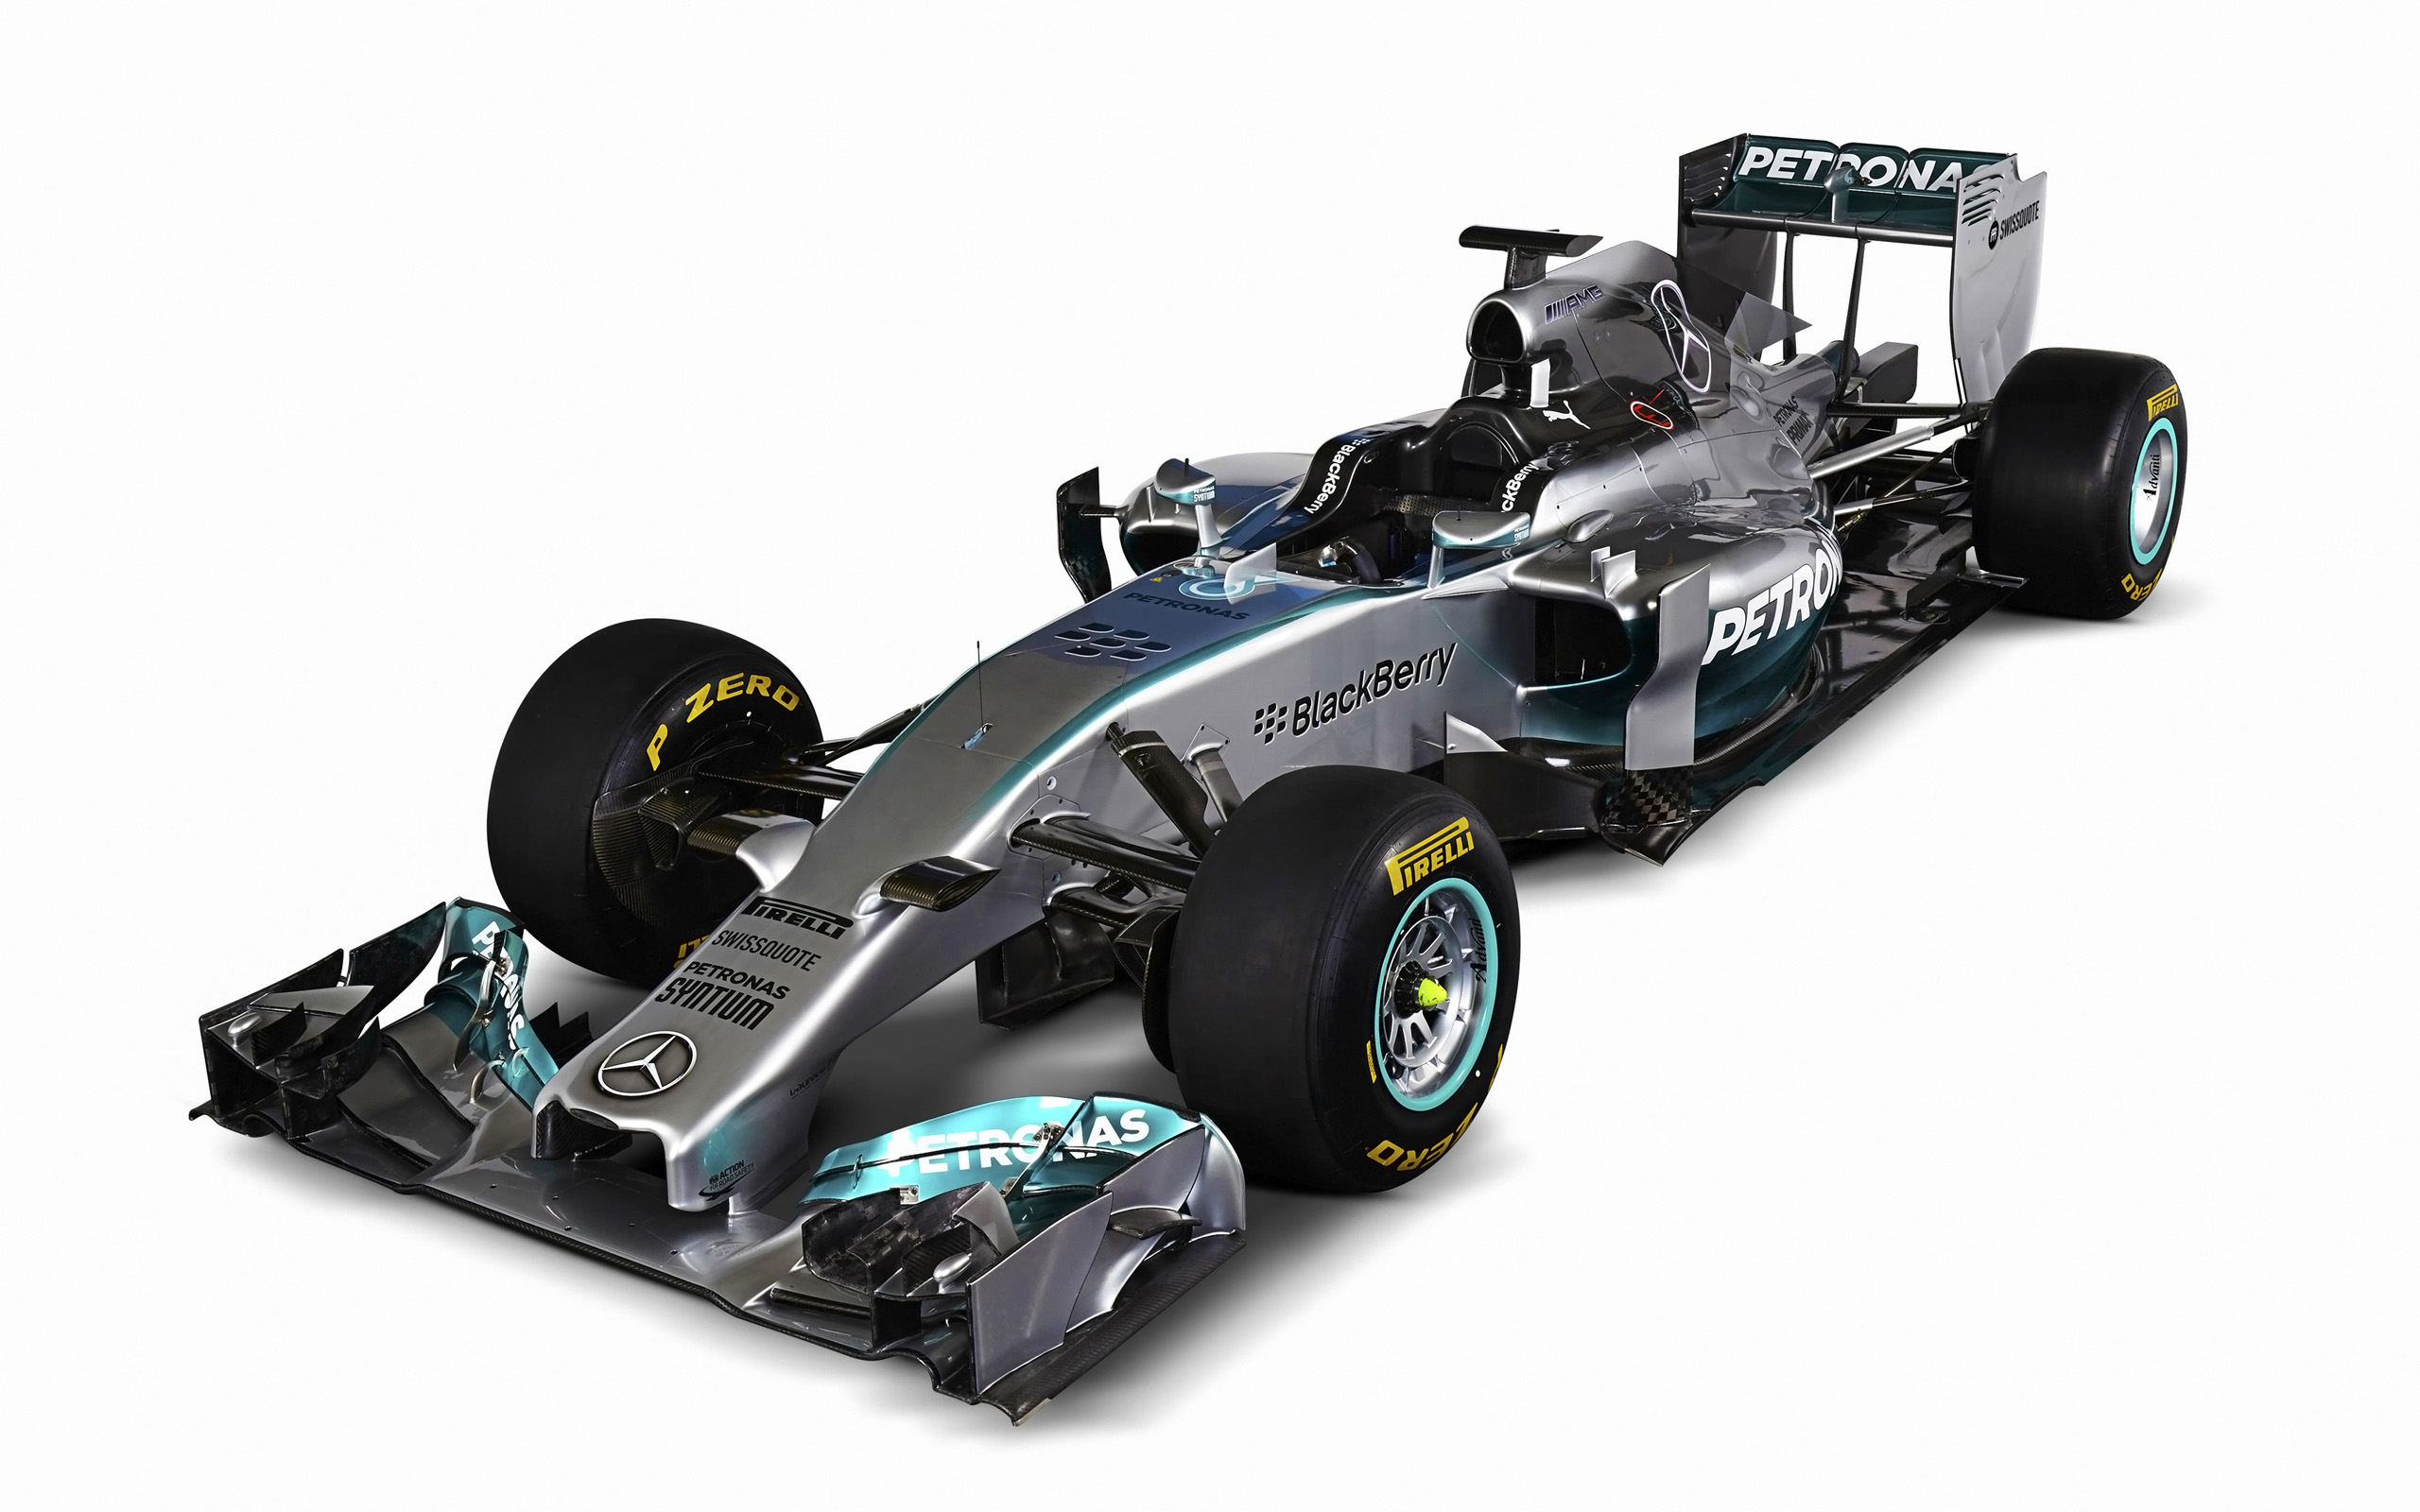 mercedes amg petronas f1 w05 2014 wallpaper hd car